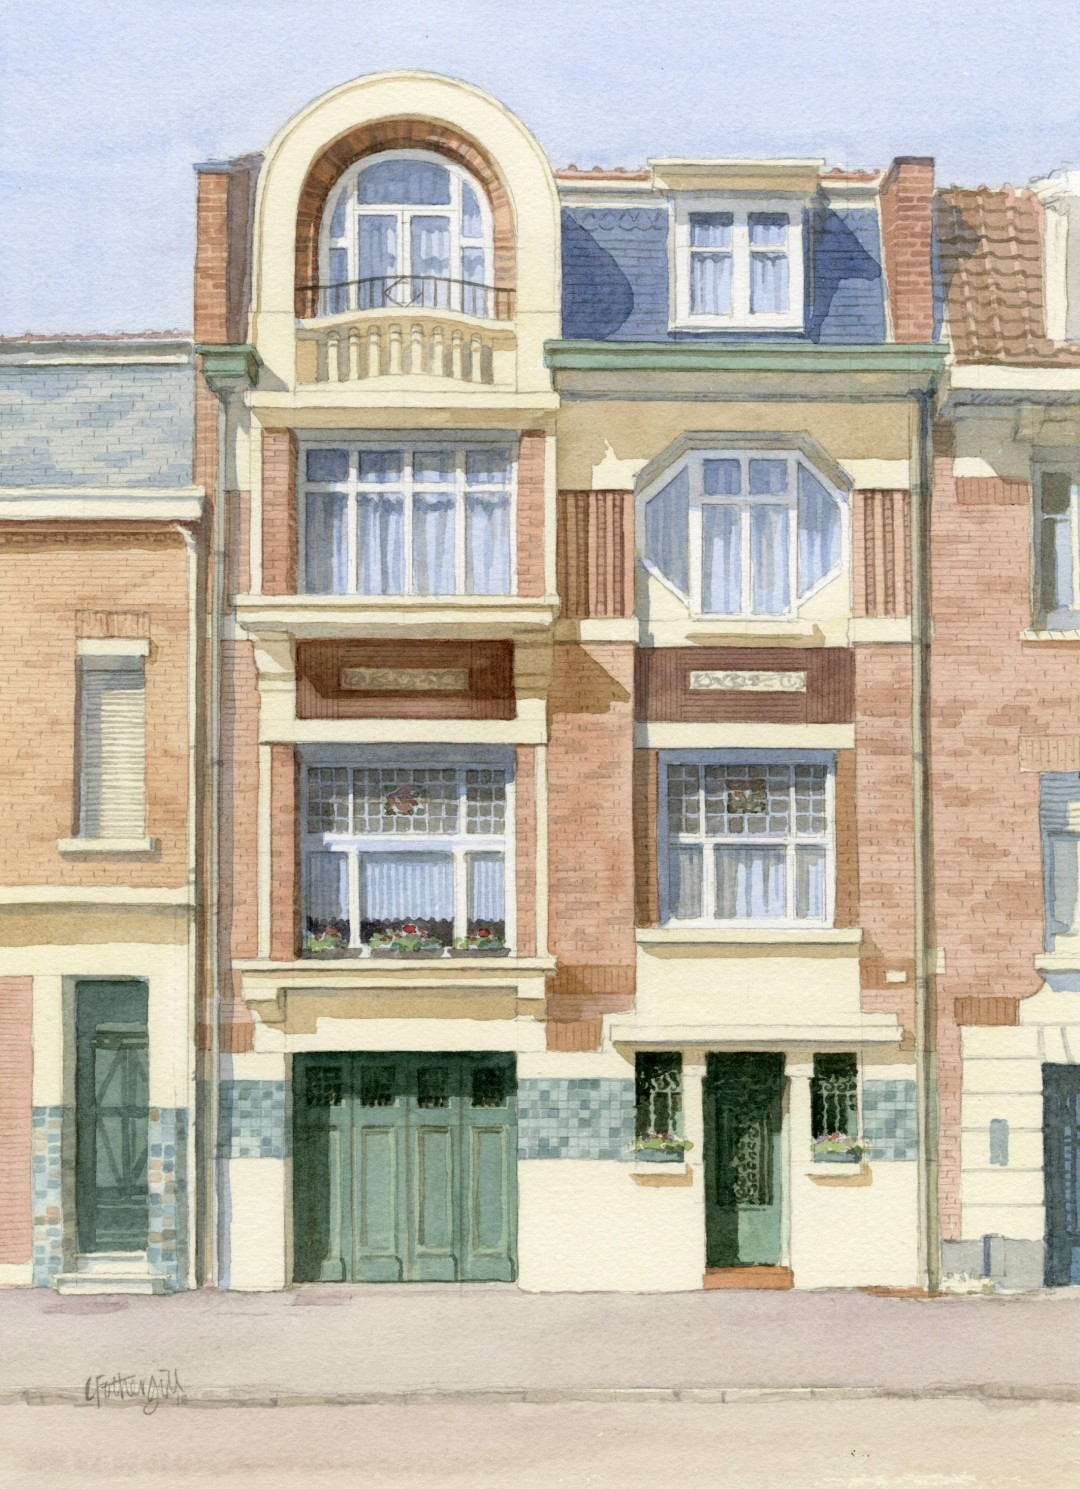 House in Belgium slightly Art Nouveau